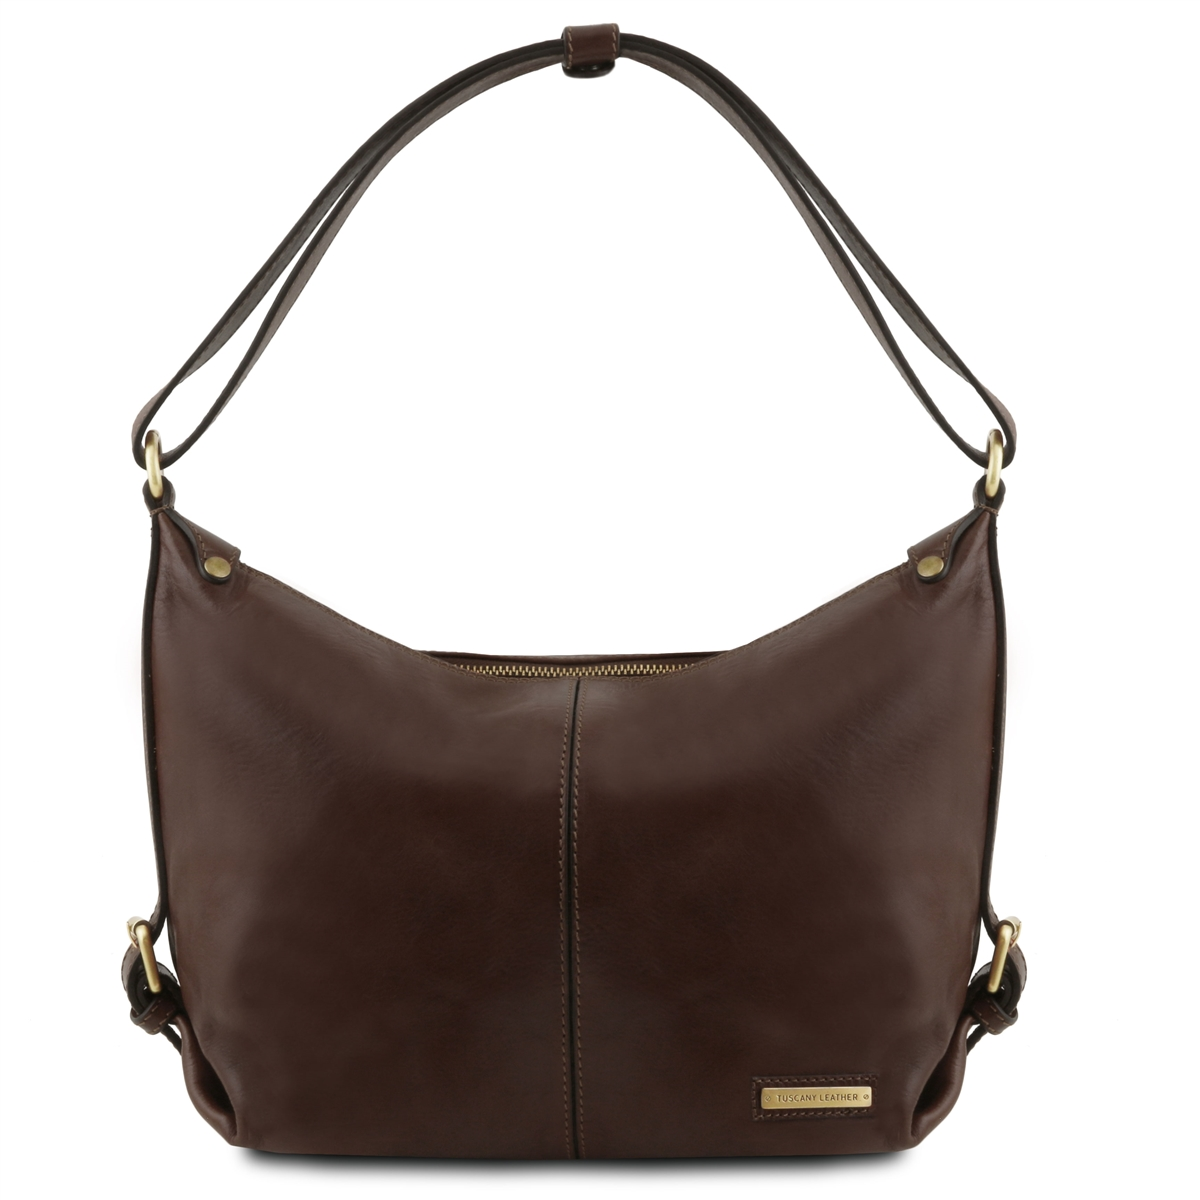 d8e277c7f2f7 TL141479 Sabrina Leather Hobo Bag in Dark Brown by Tuscany Leather